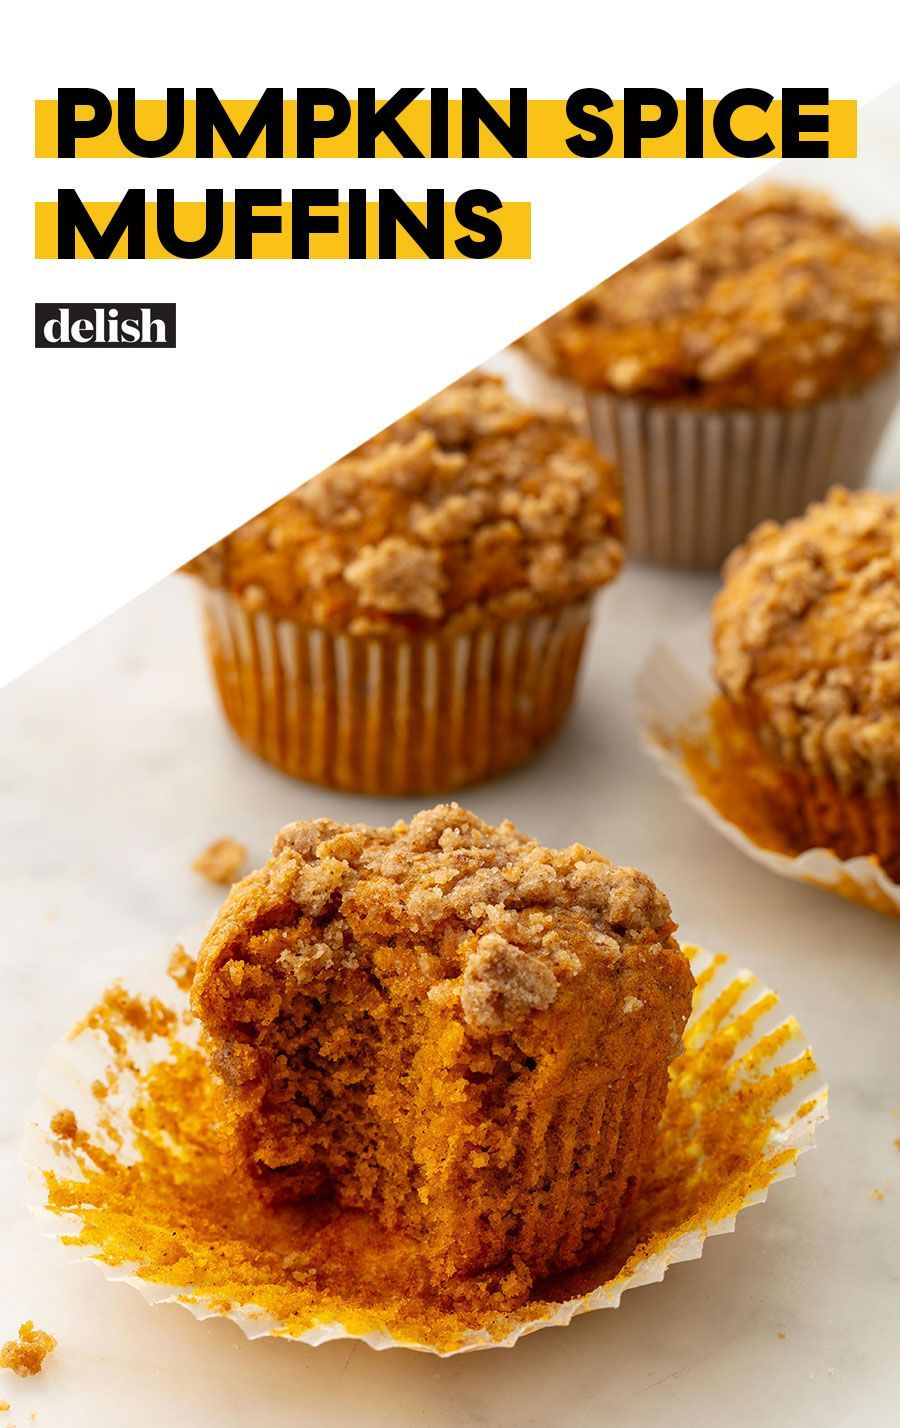 Pumpkin Spice Muffins Make The Perfect Fall Breakfast